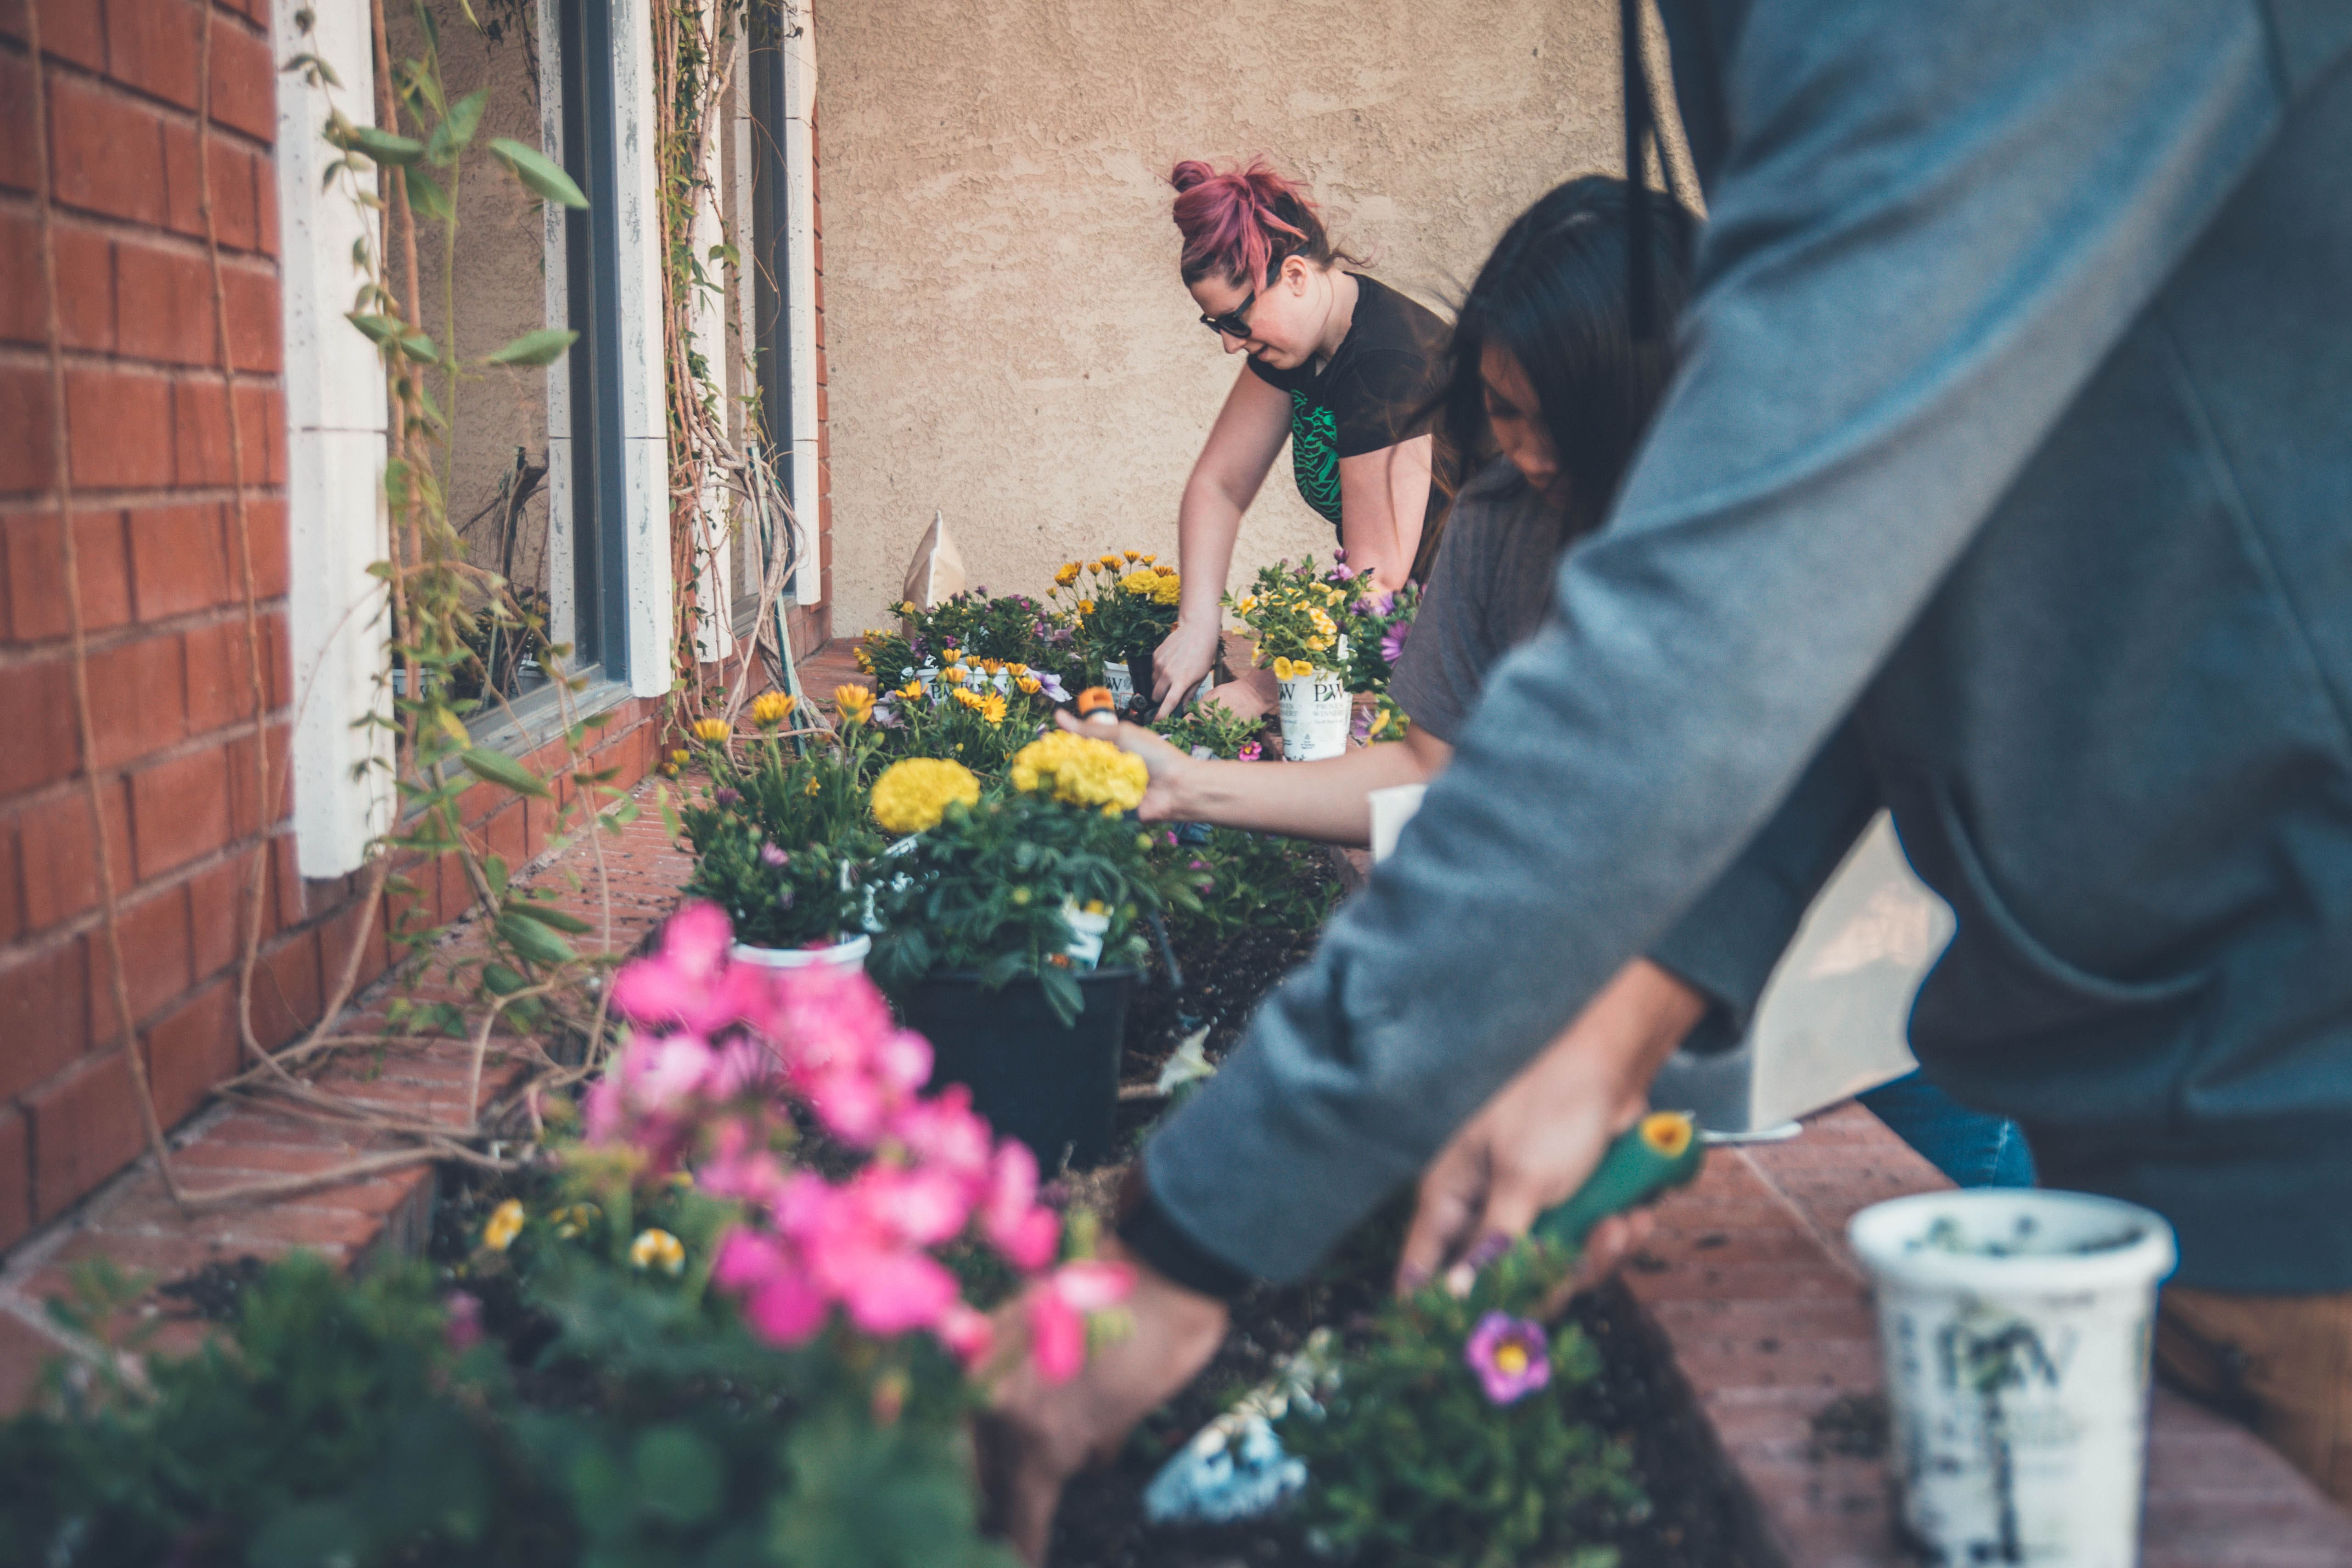 A Beginner Gardener's Guide to Spotting Good and Bad Bugs